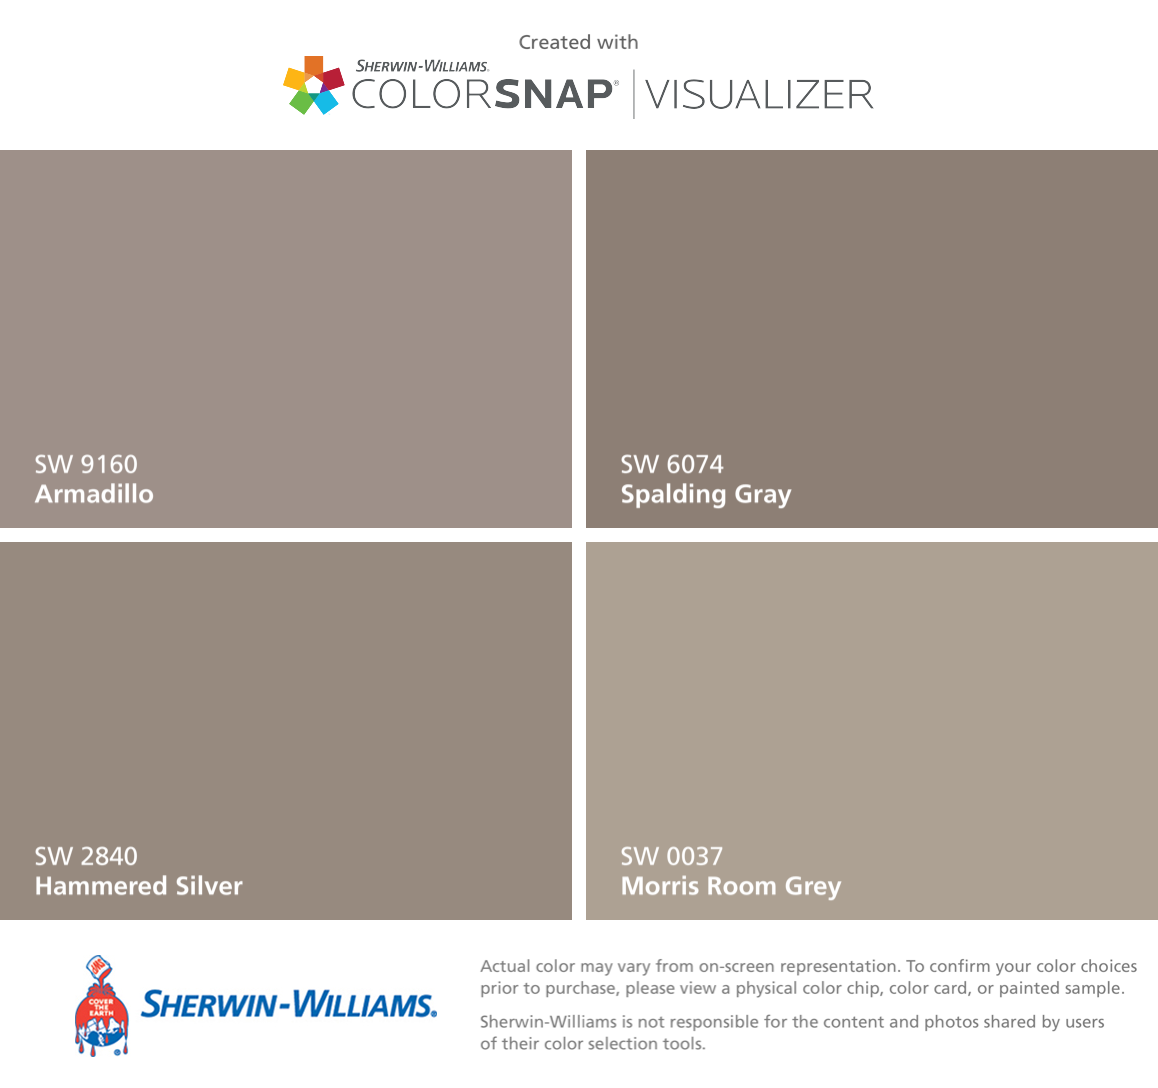 I Found These Colors With Colorsnap Visualizer For Iphone By Sherwin Williams Armadillo Sw 9160 Hammered Silver 2840 Spalding Gray 6074